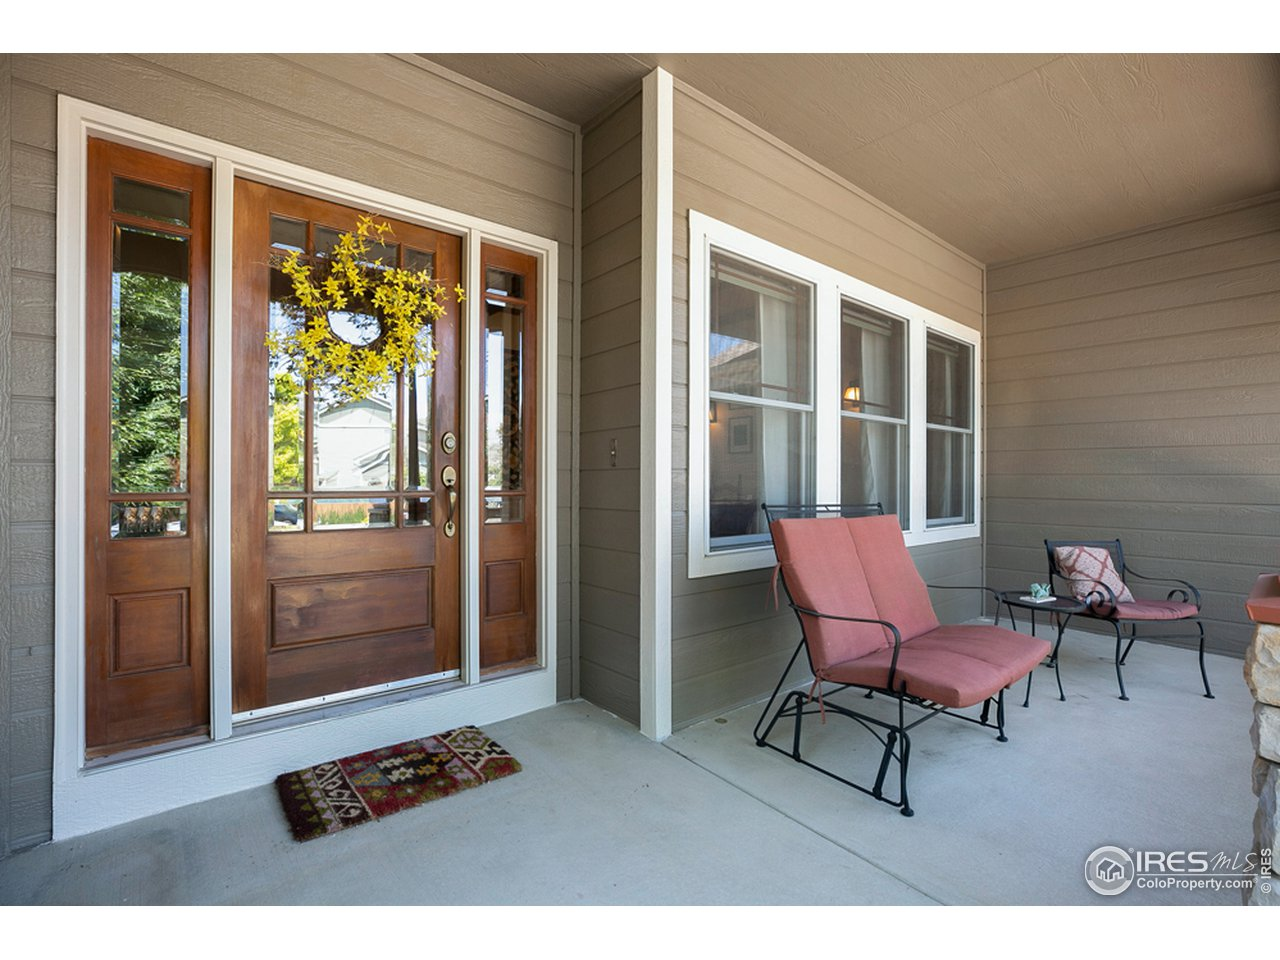 Beautiful curb appeal and front porch